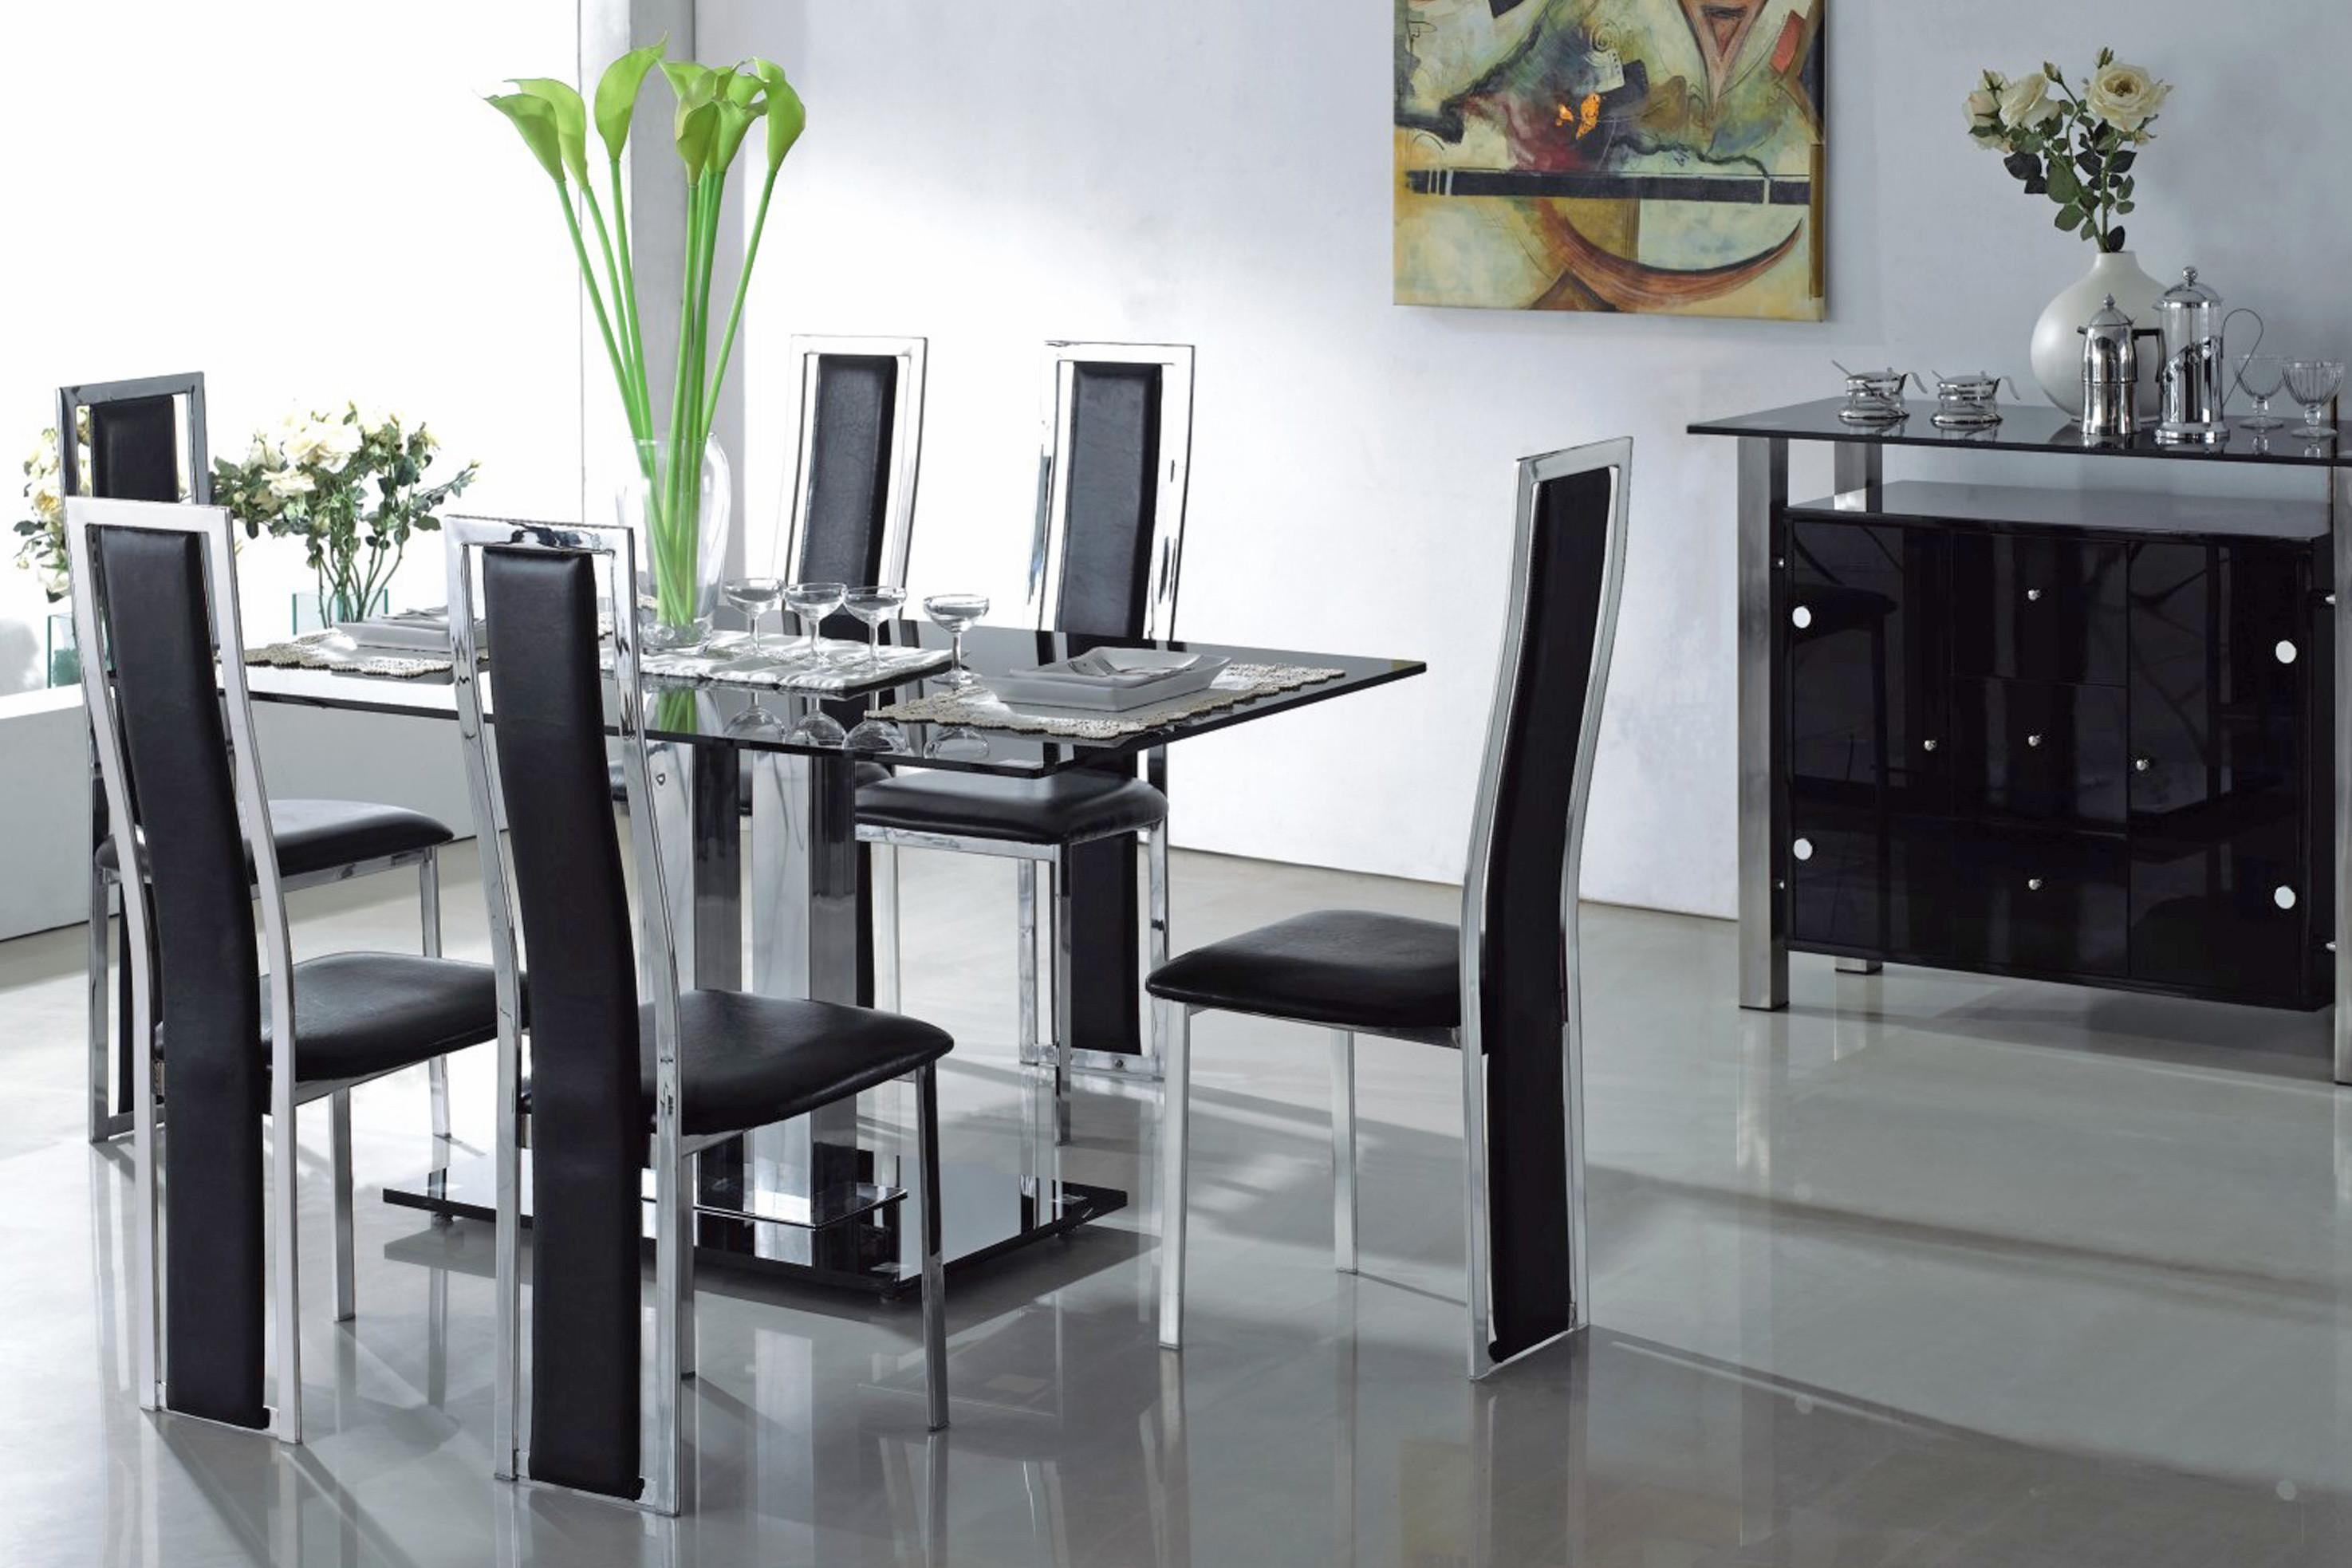 Luxury Black Glass Dining Room Table Chairs Light